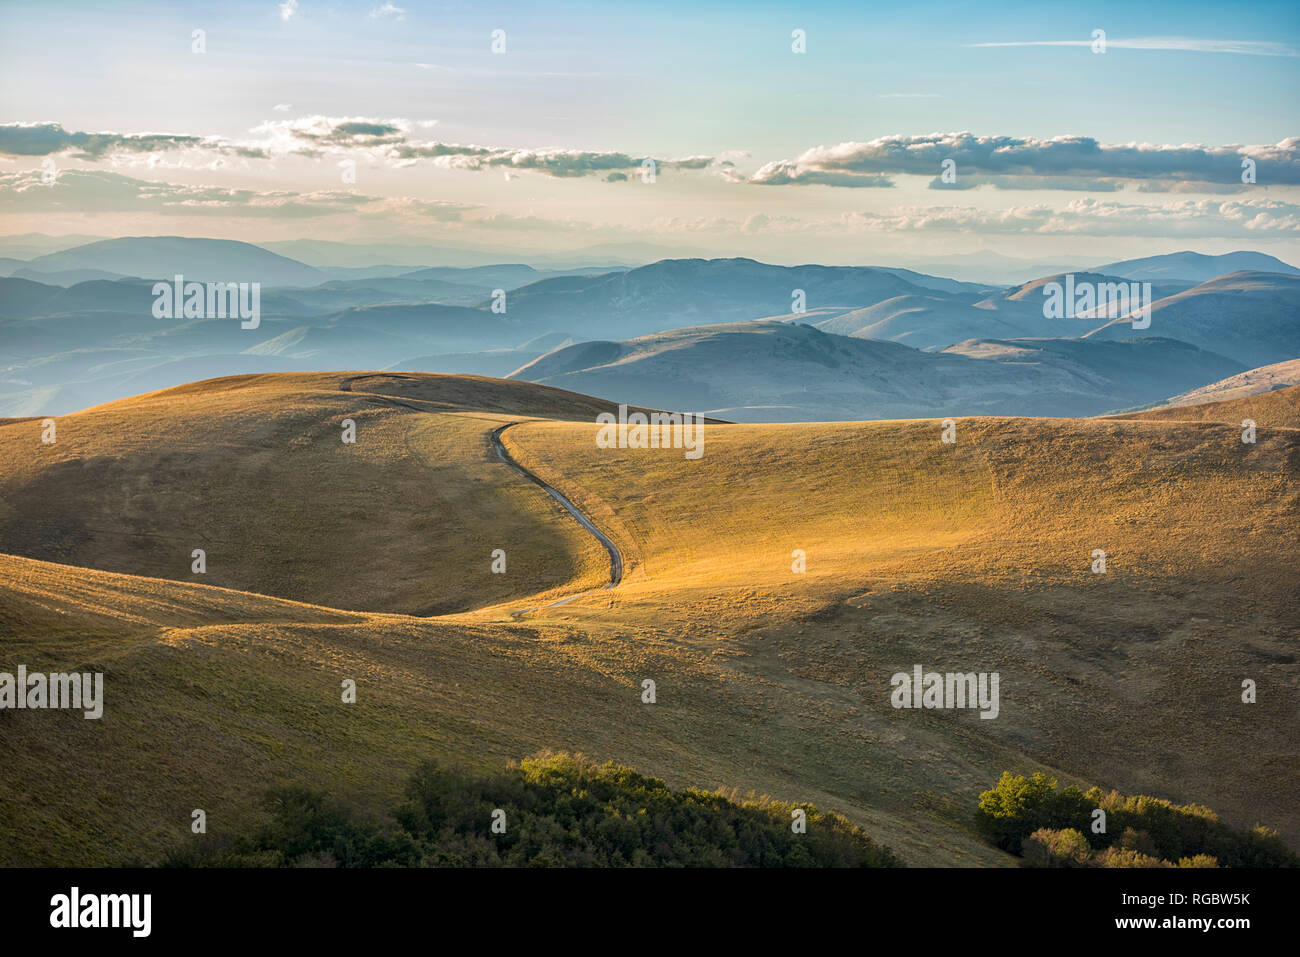 Italy, Umbria, Sibillini Park, Dirt road in the hills - Stock Image